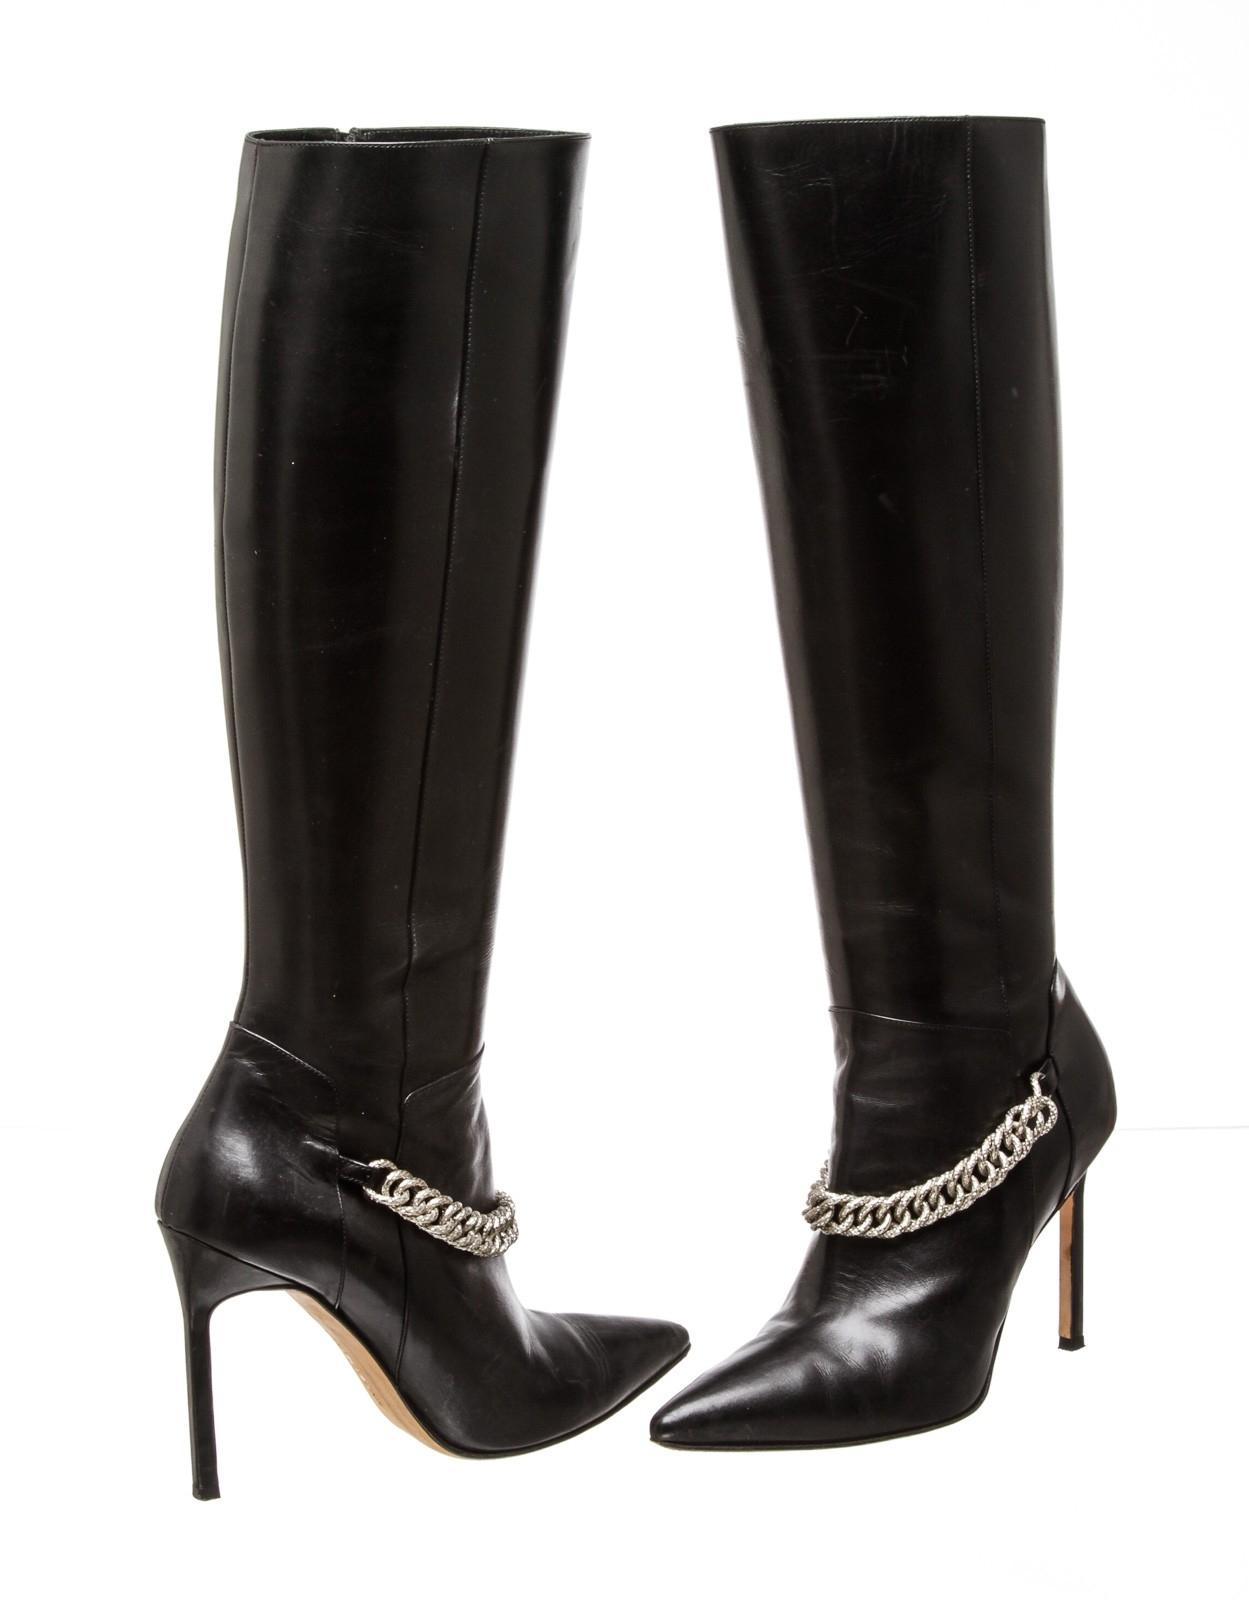 Manolo Blahnik Black Leather Chain-trimmed 38) 485510 Boots/Booties Size EU 38 (Approx. US 8) Regular (M, B)